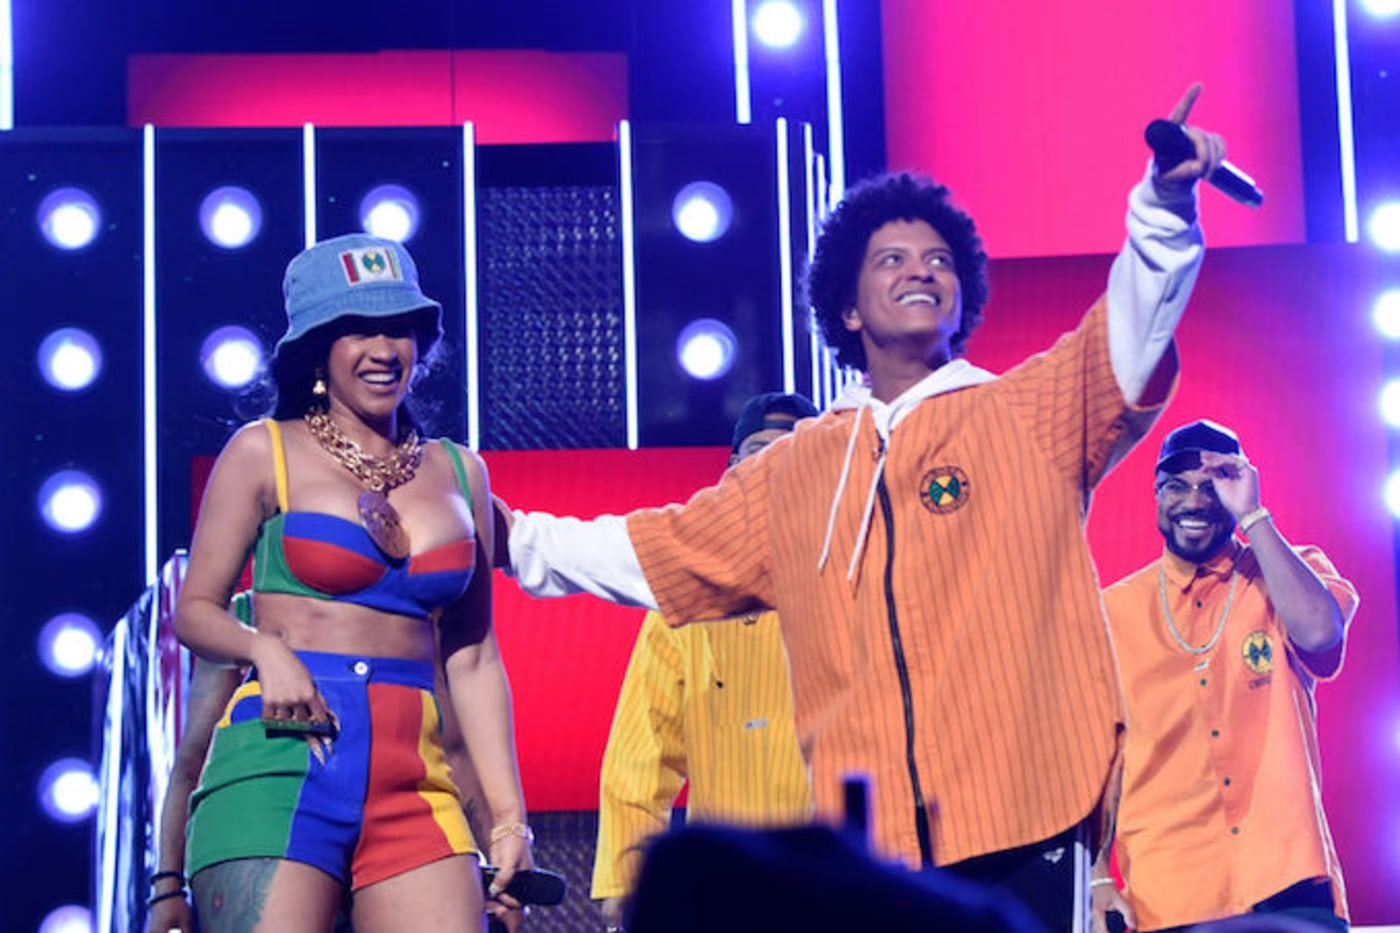 This is a picture of Bruno Mars and Cardi B.